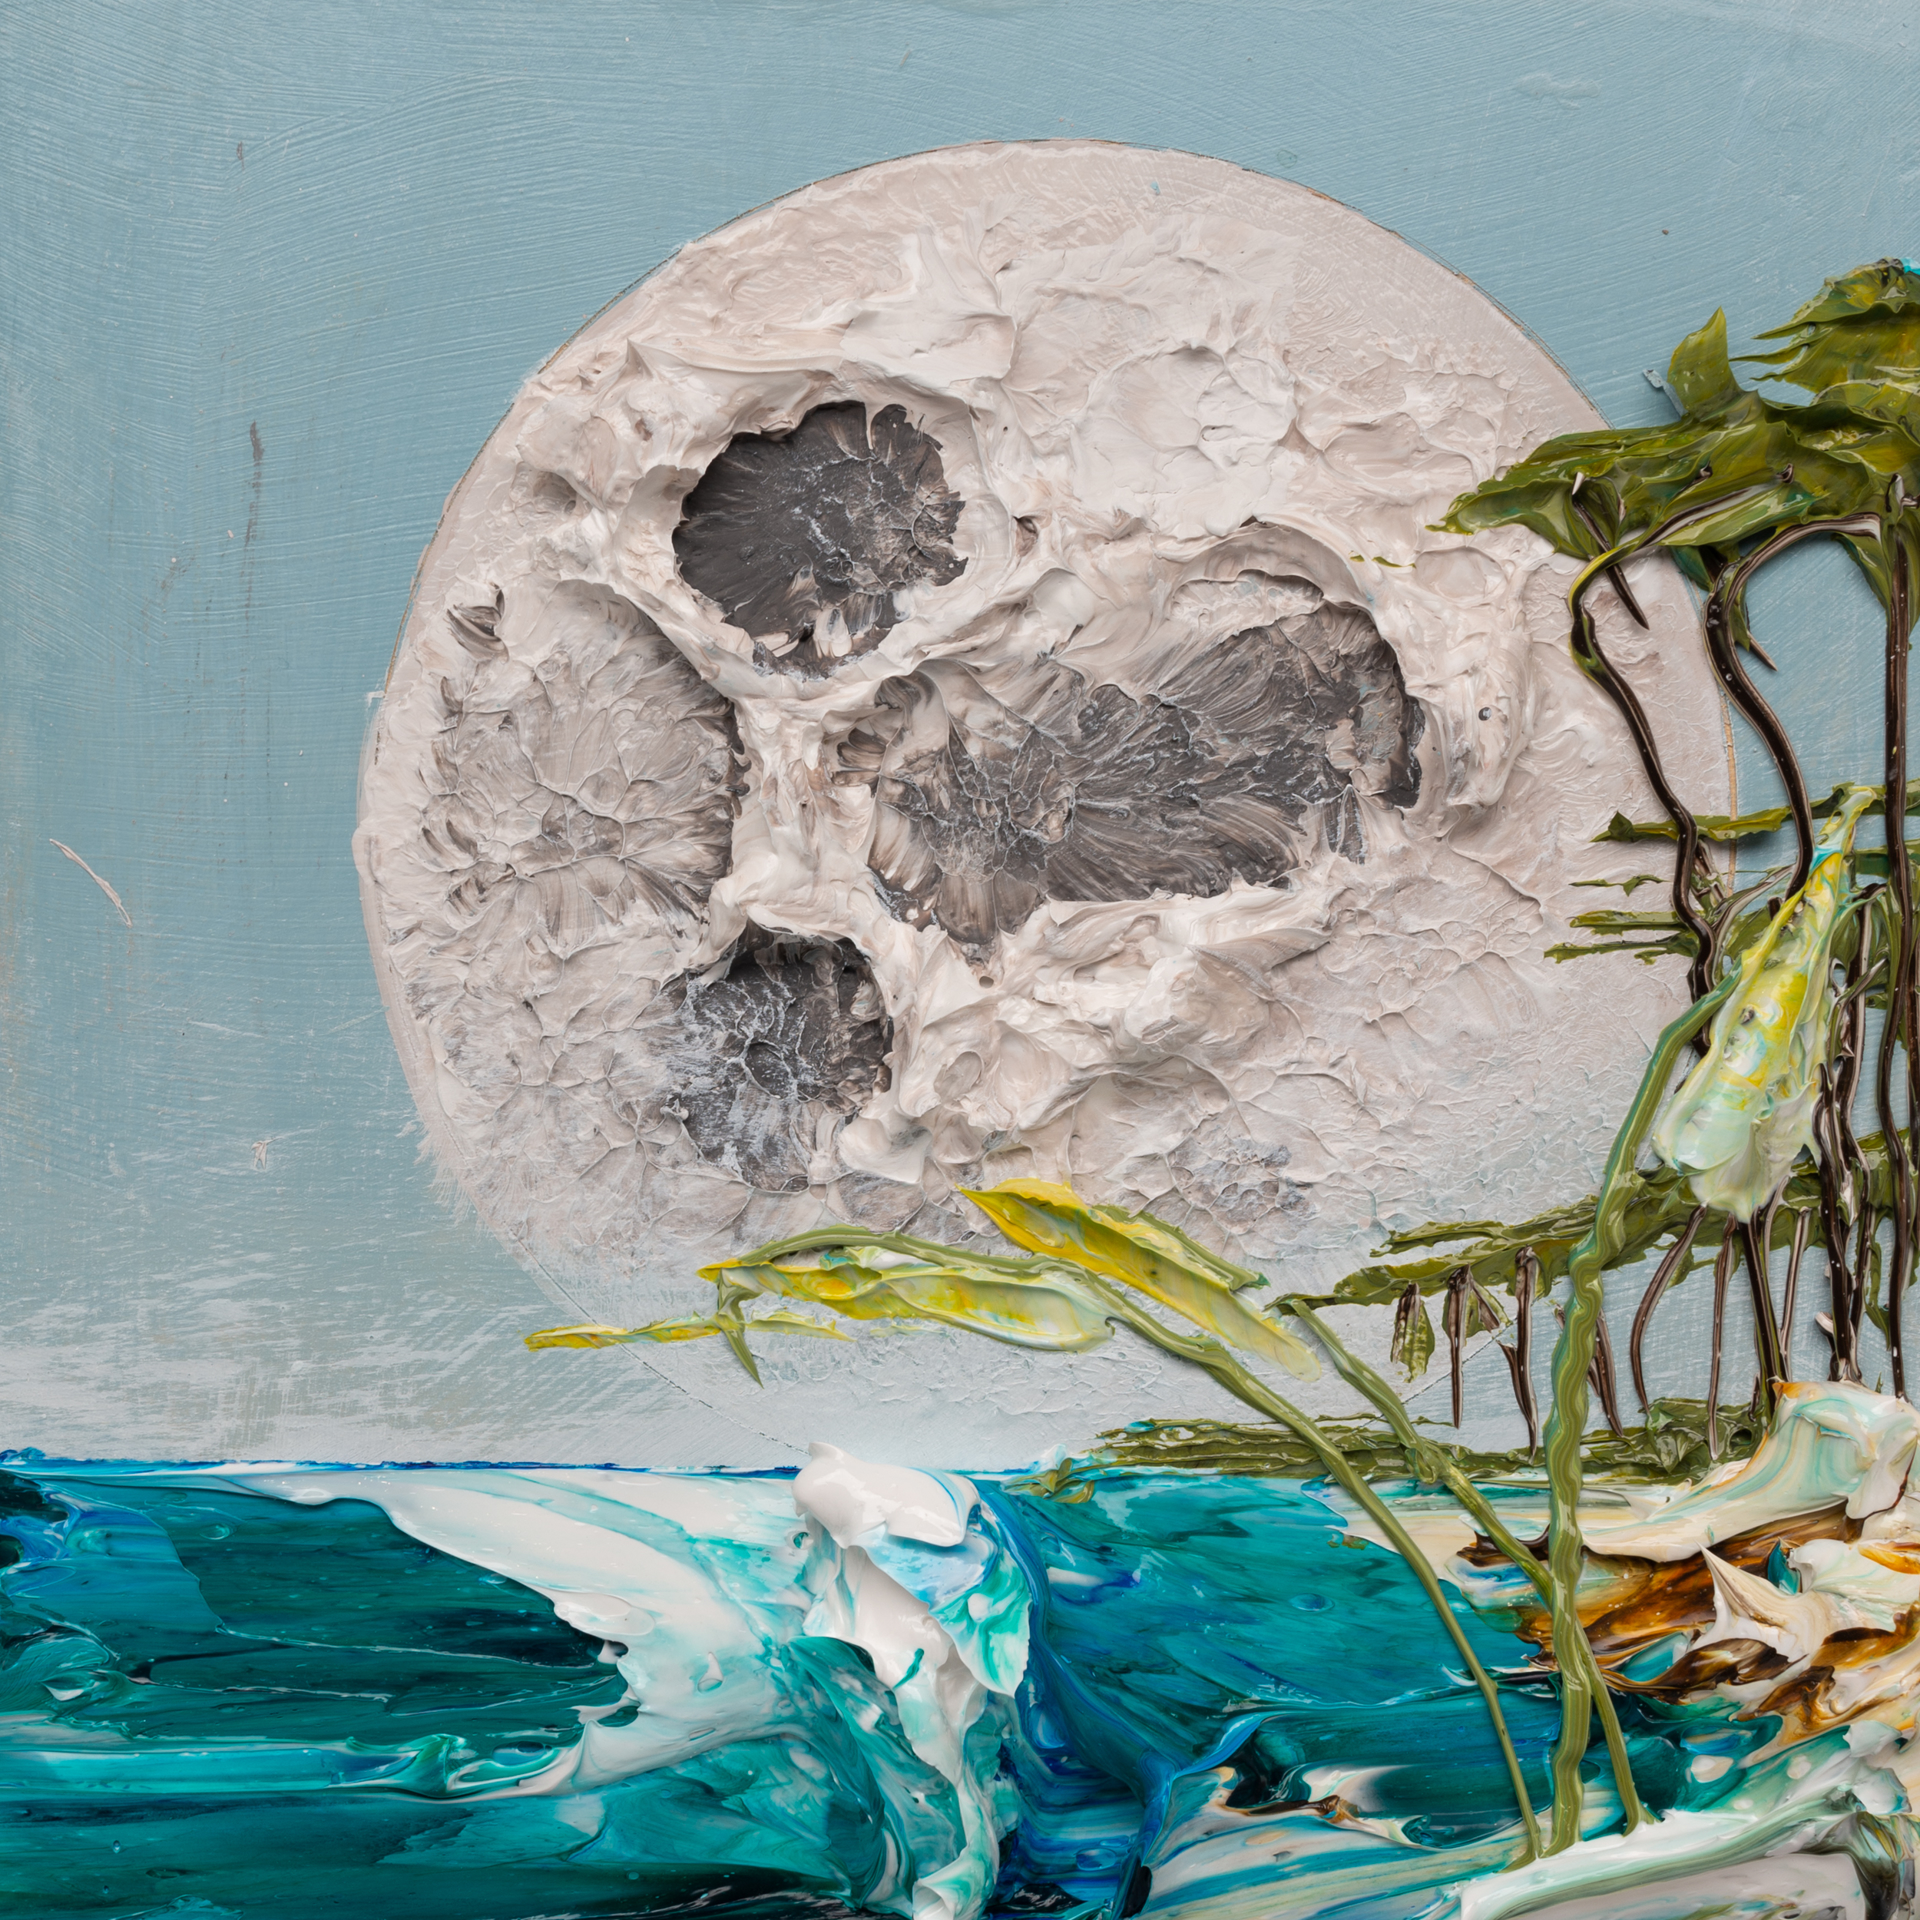 MOONSCAPE MS-12X12-2019-324 by JUSTIN GAFFREY